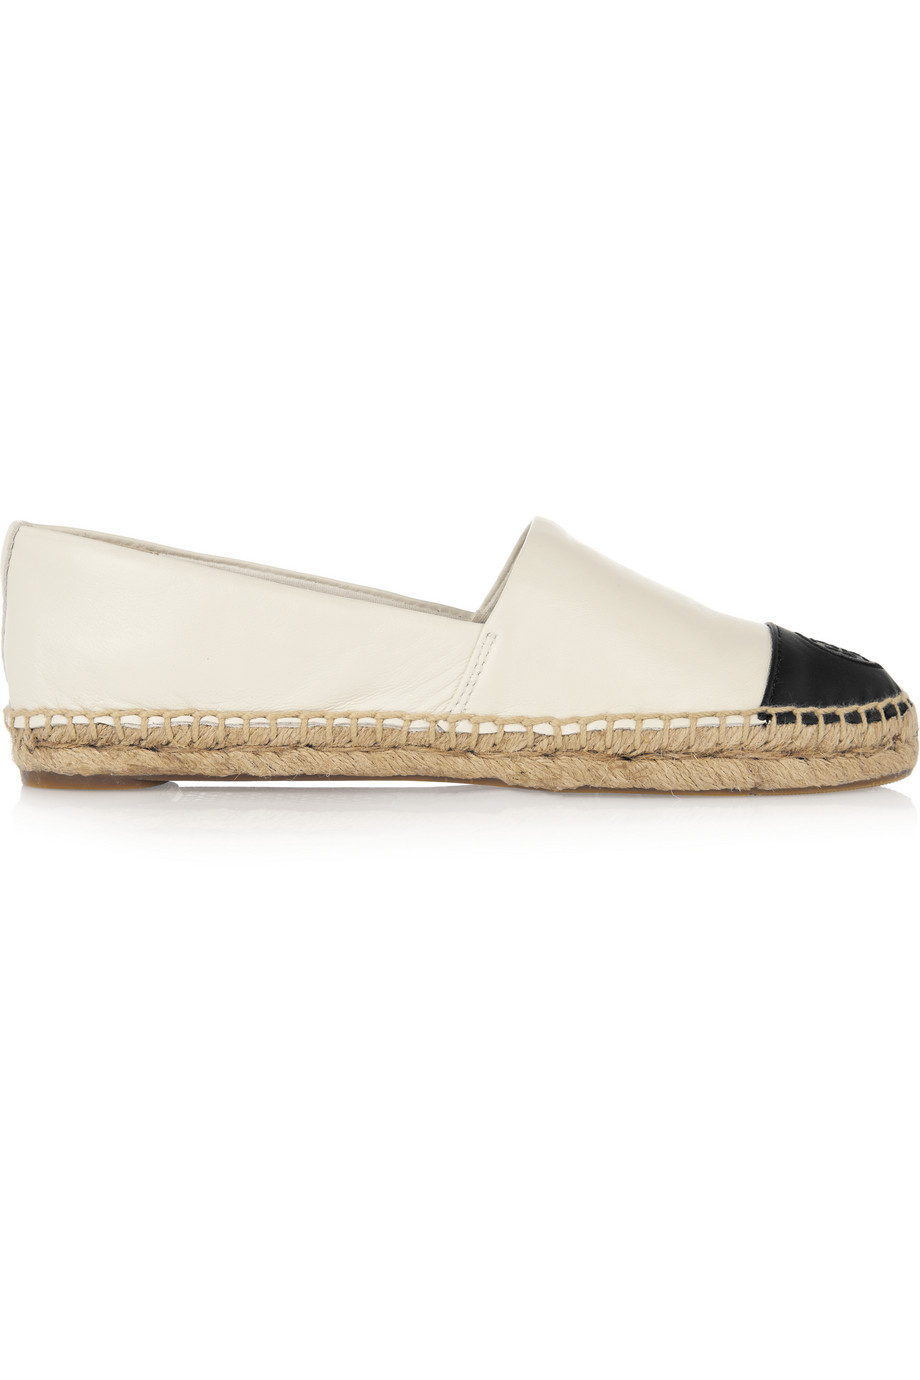 Tory Burch Two-Tone Leather Espadrilles, Ivory, Women's, Size: 8.5